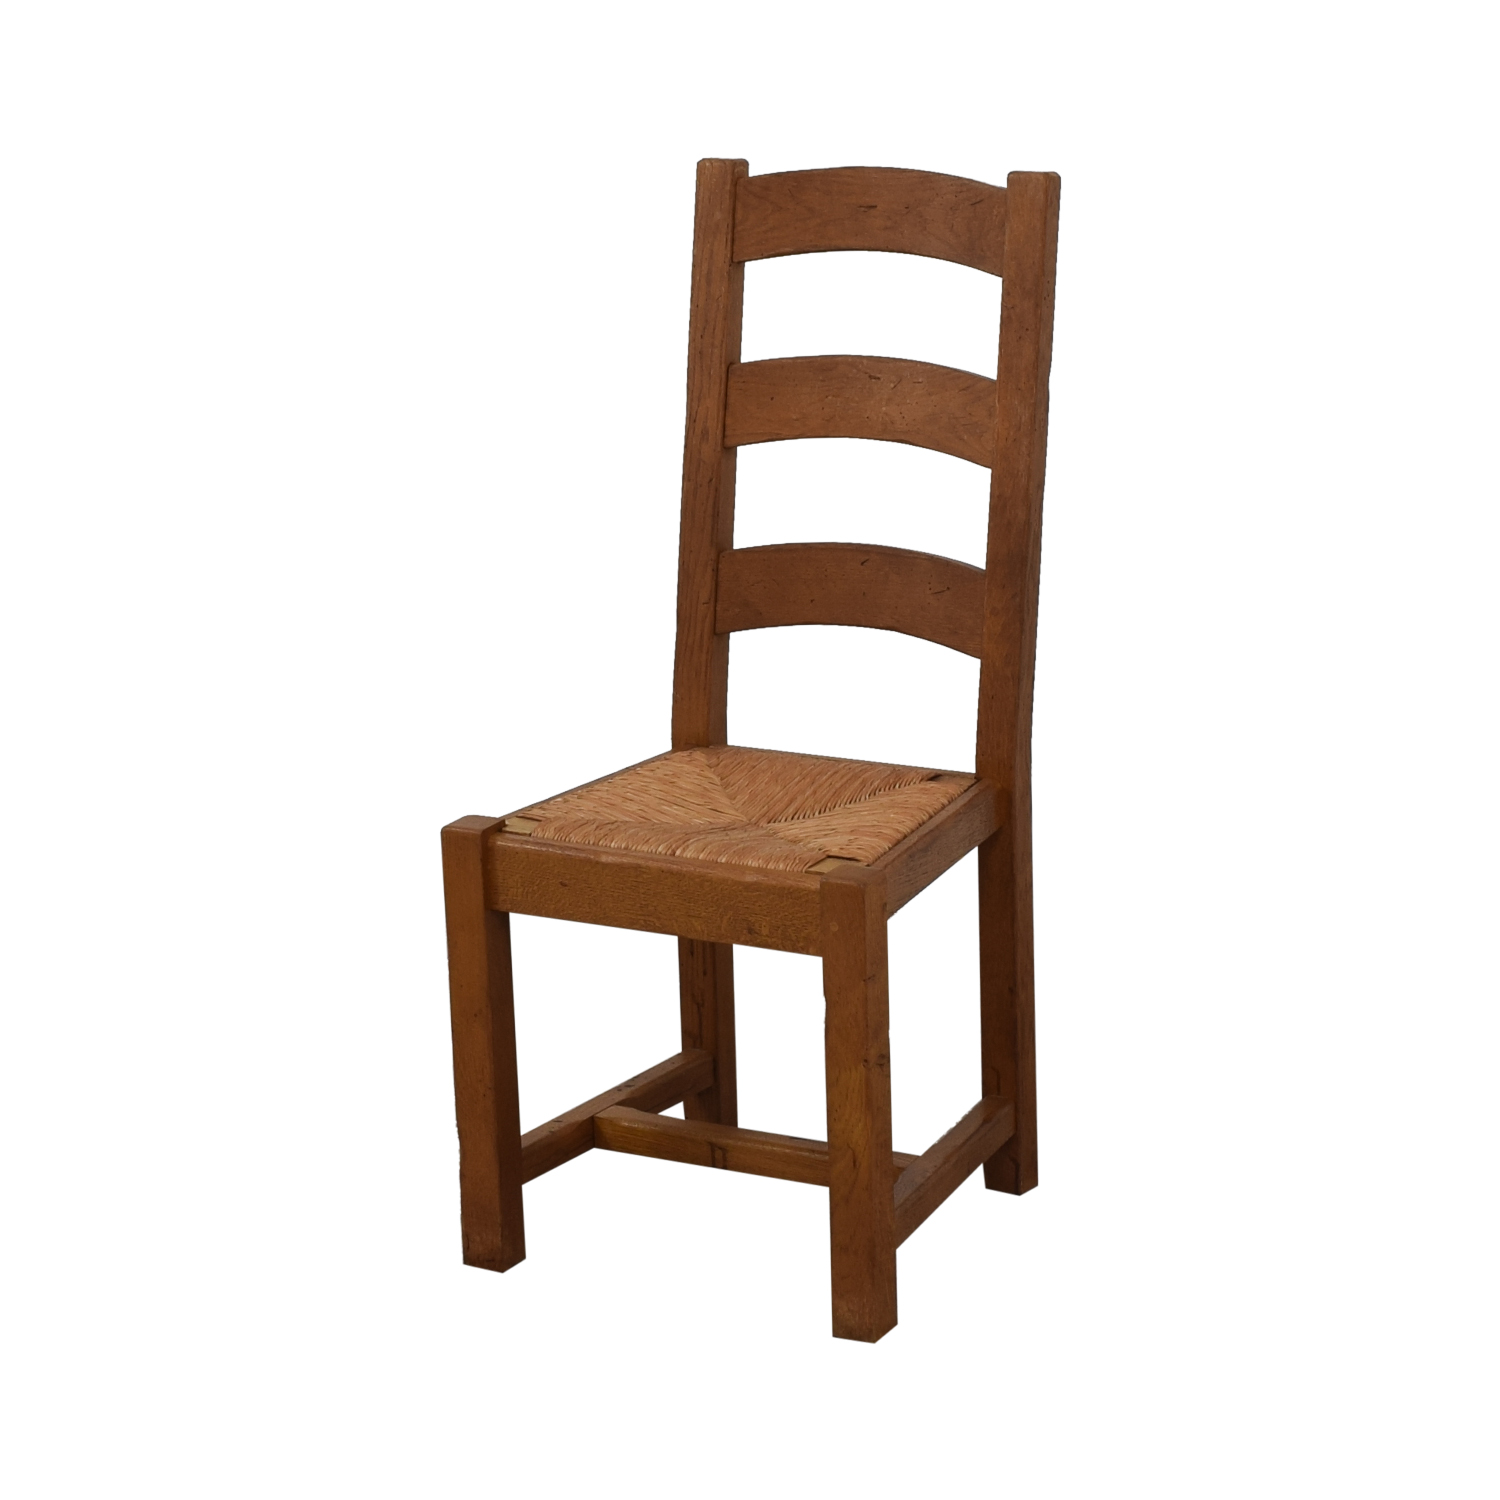 Crate & Barrel Crate & Barrel French Farm Dining Chairs nj